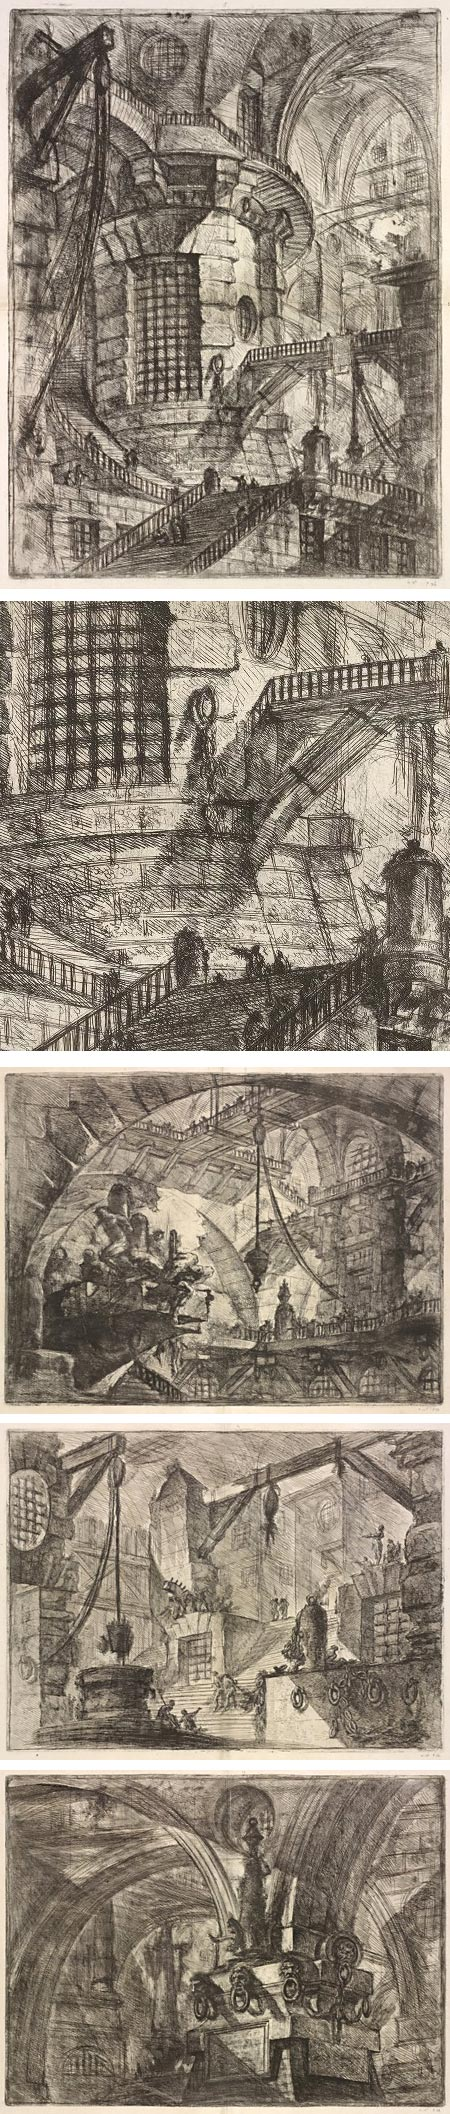 Piranesi's Prisons: Architecture of Mystery and Imagination, Giovanni Battista Piranesi